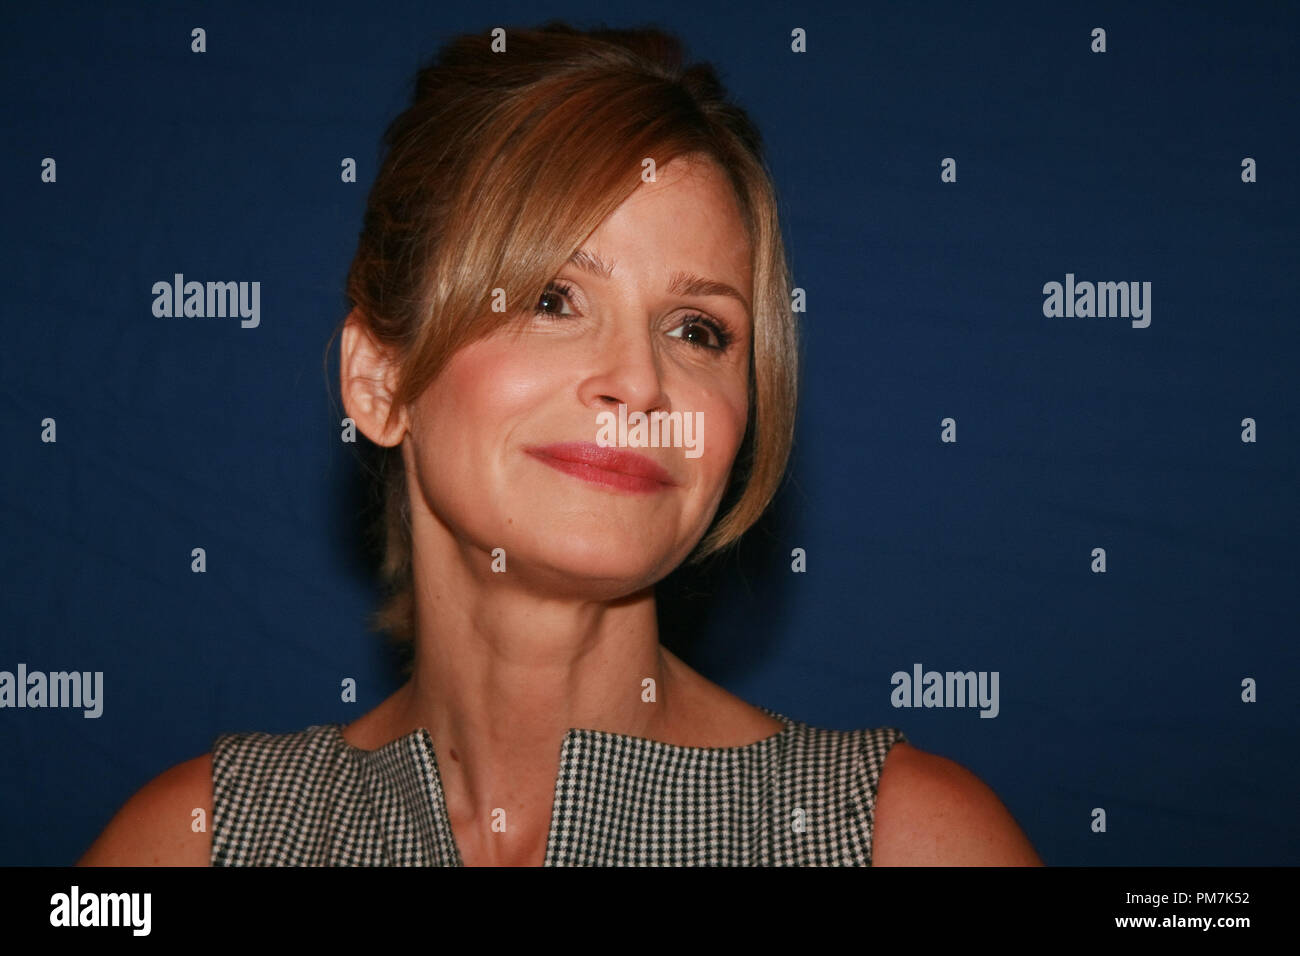 Kyra Sedgwick  'The Closer' Portrait Session, August 10, 2011.  Reproduction by American tabloids is absolutely forbidden. File Reference # 31130_013JRC  For Editorial Use Only -  All Rights Reserved - Stock Image